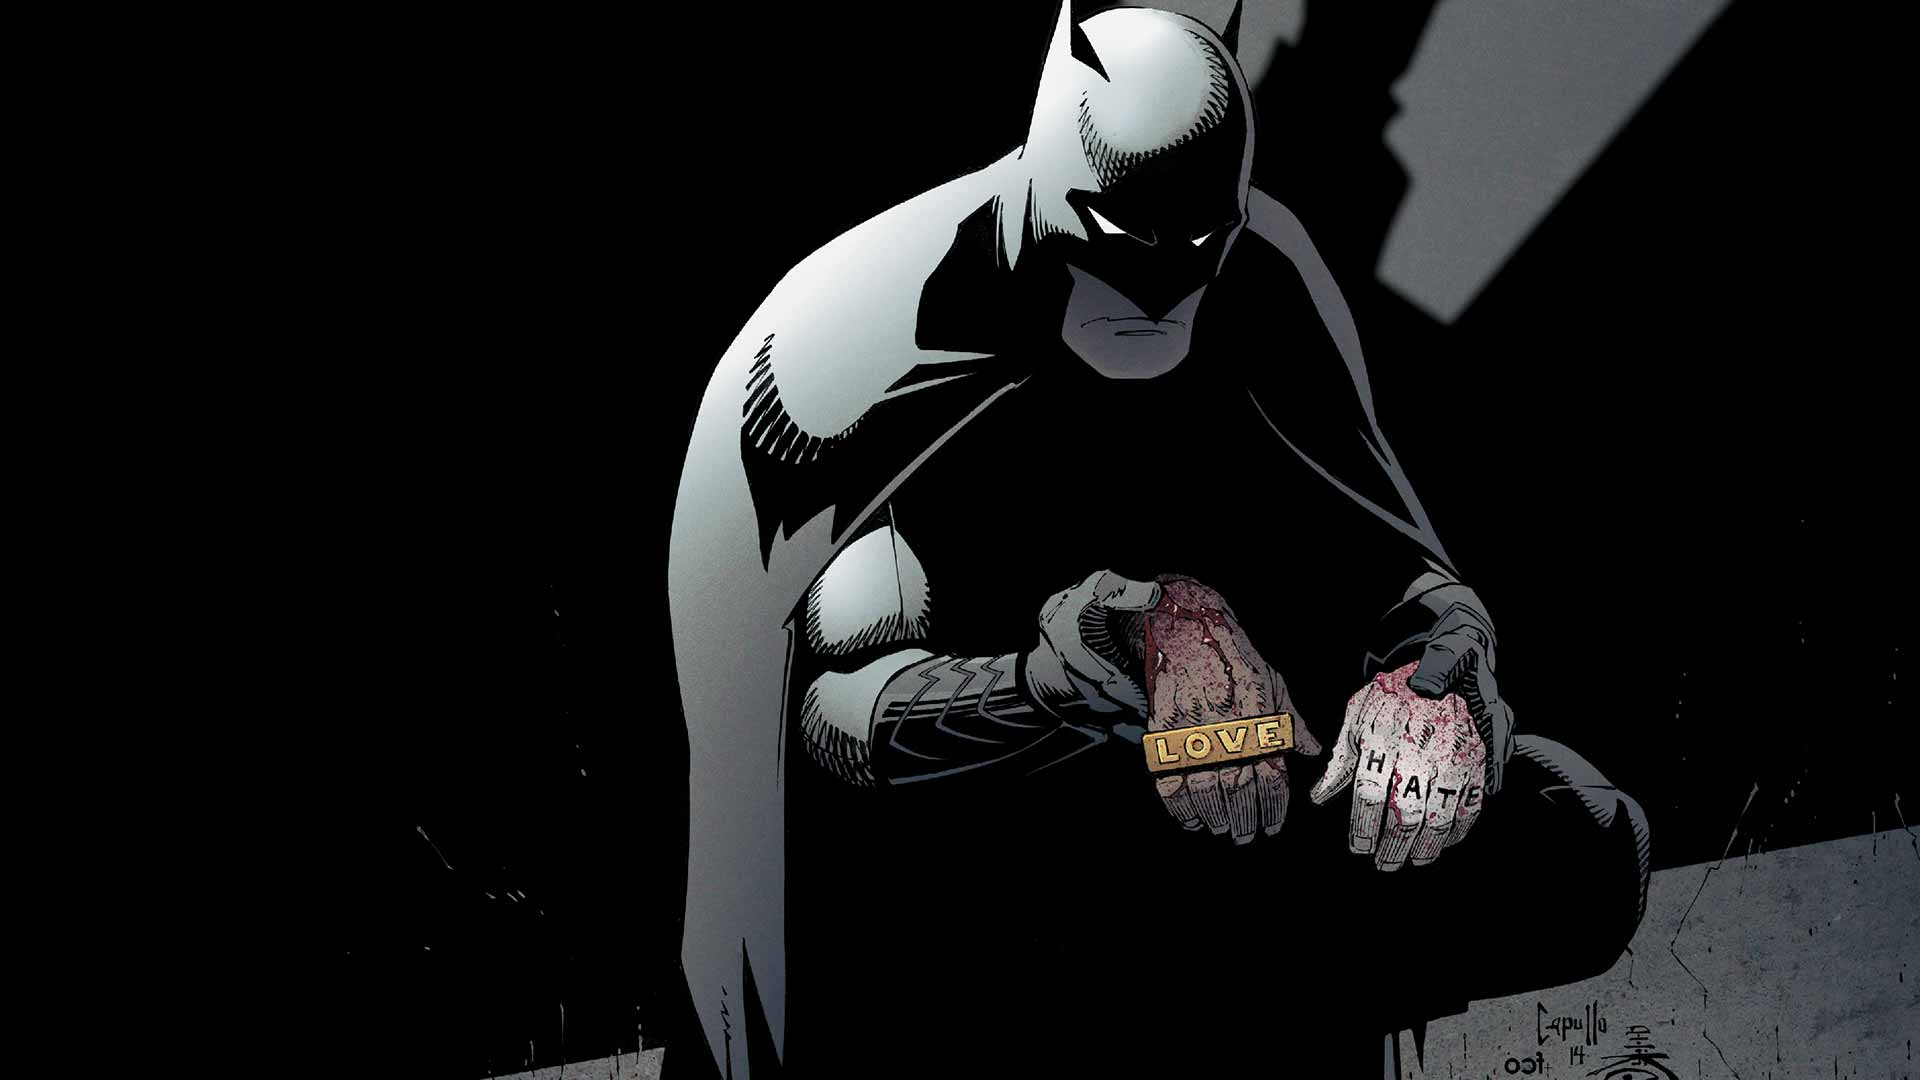 Dark-Knight-Caped-Crusader-World%E2%80%99s-Greatest-Detective-Whatever-you-know-him-as-wherever-you-kn-wallpaper-wp3804368